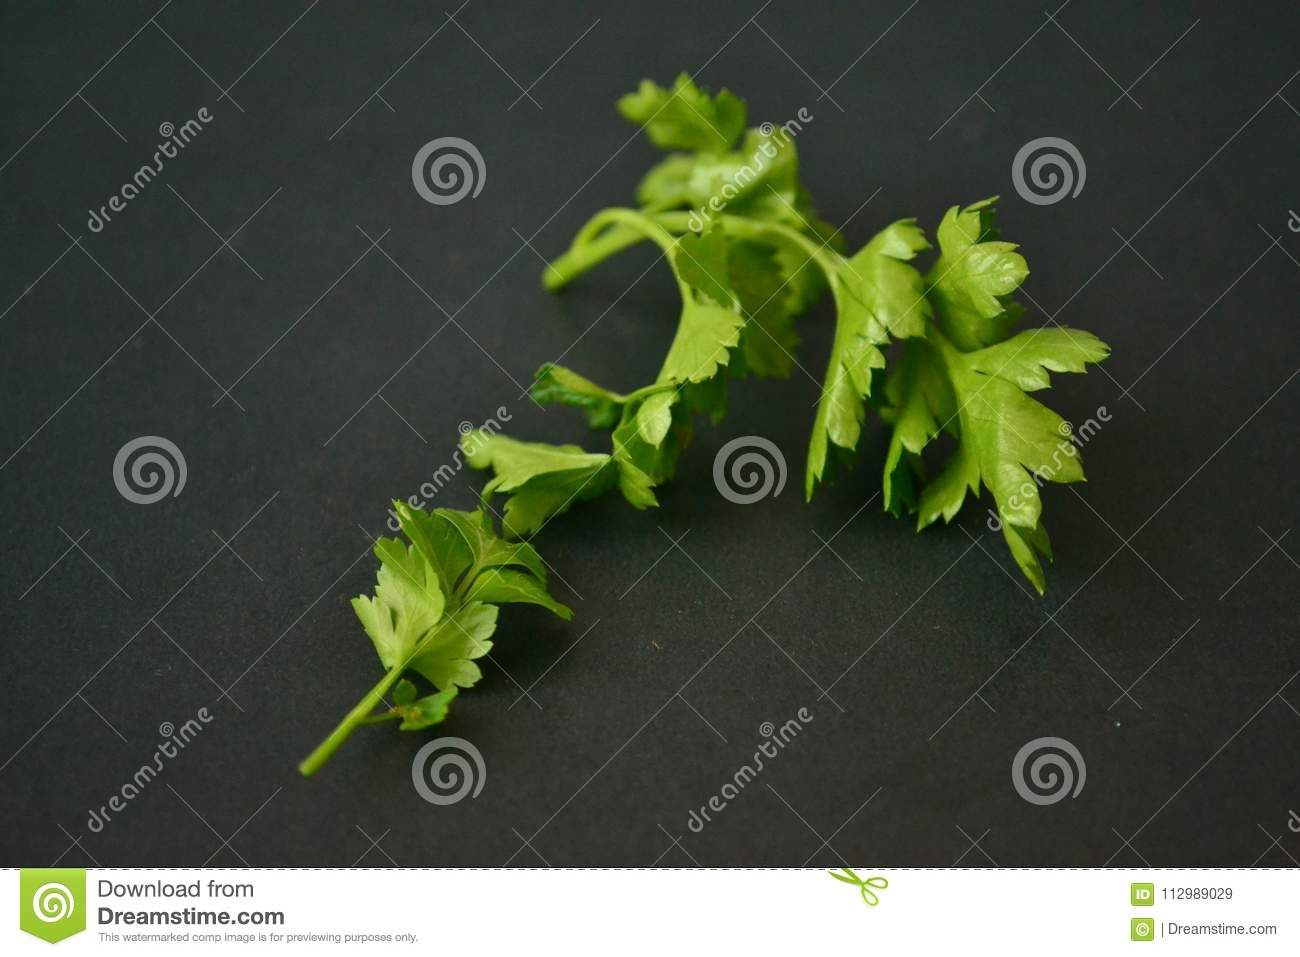 Parsley, mint, dill and onion